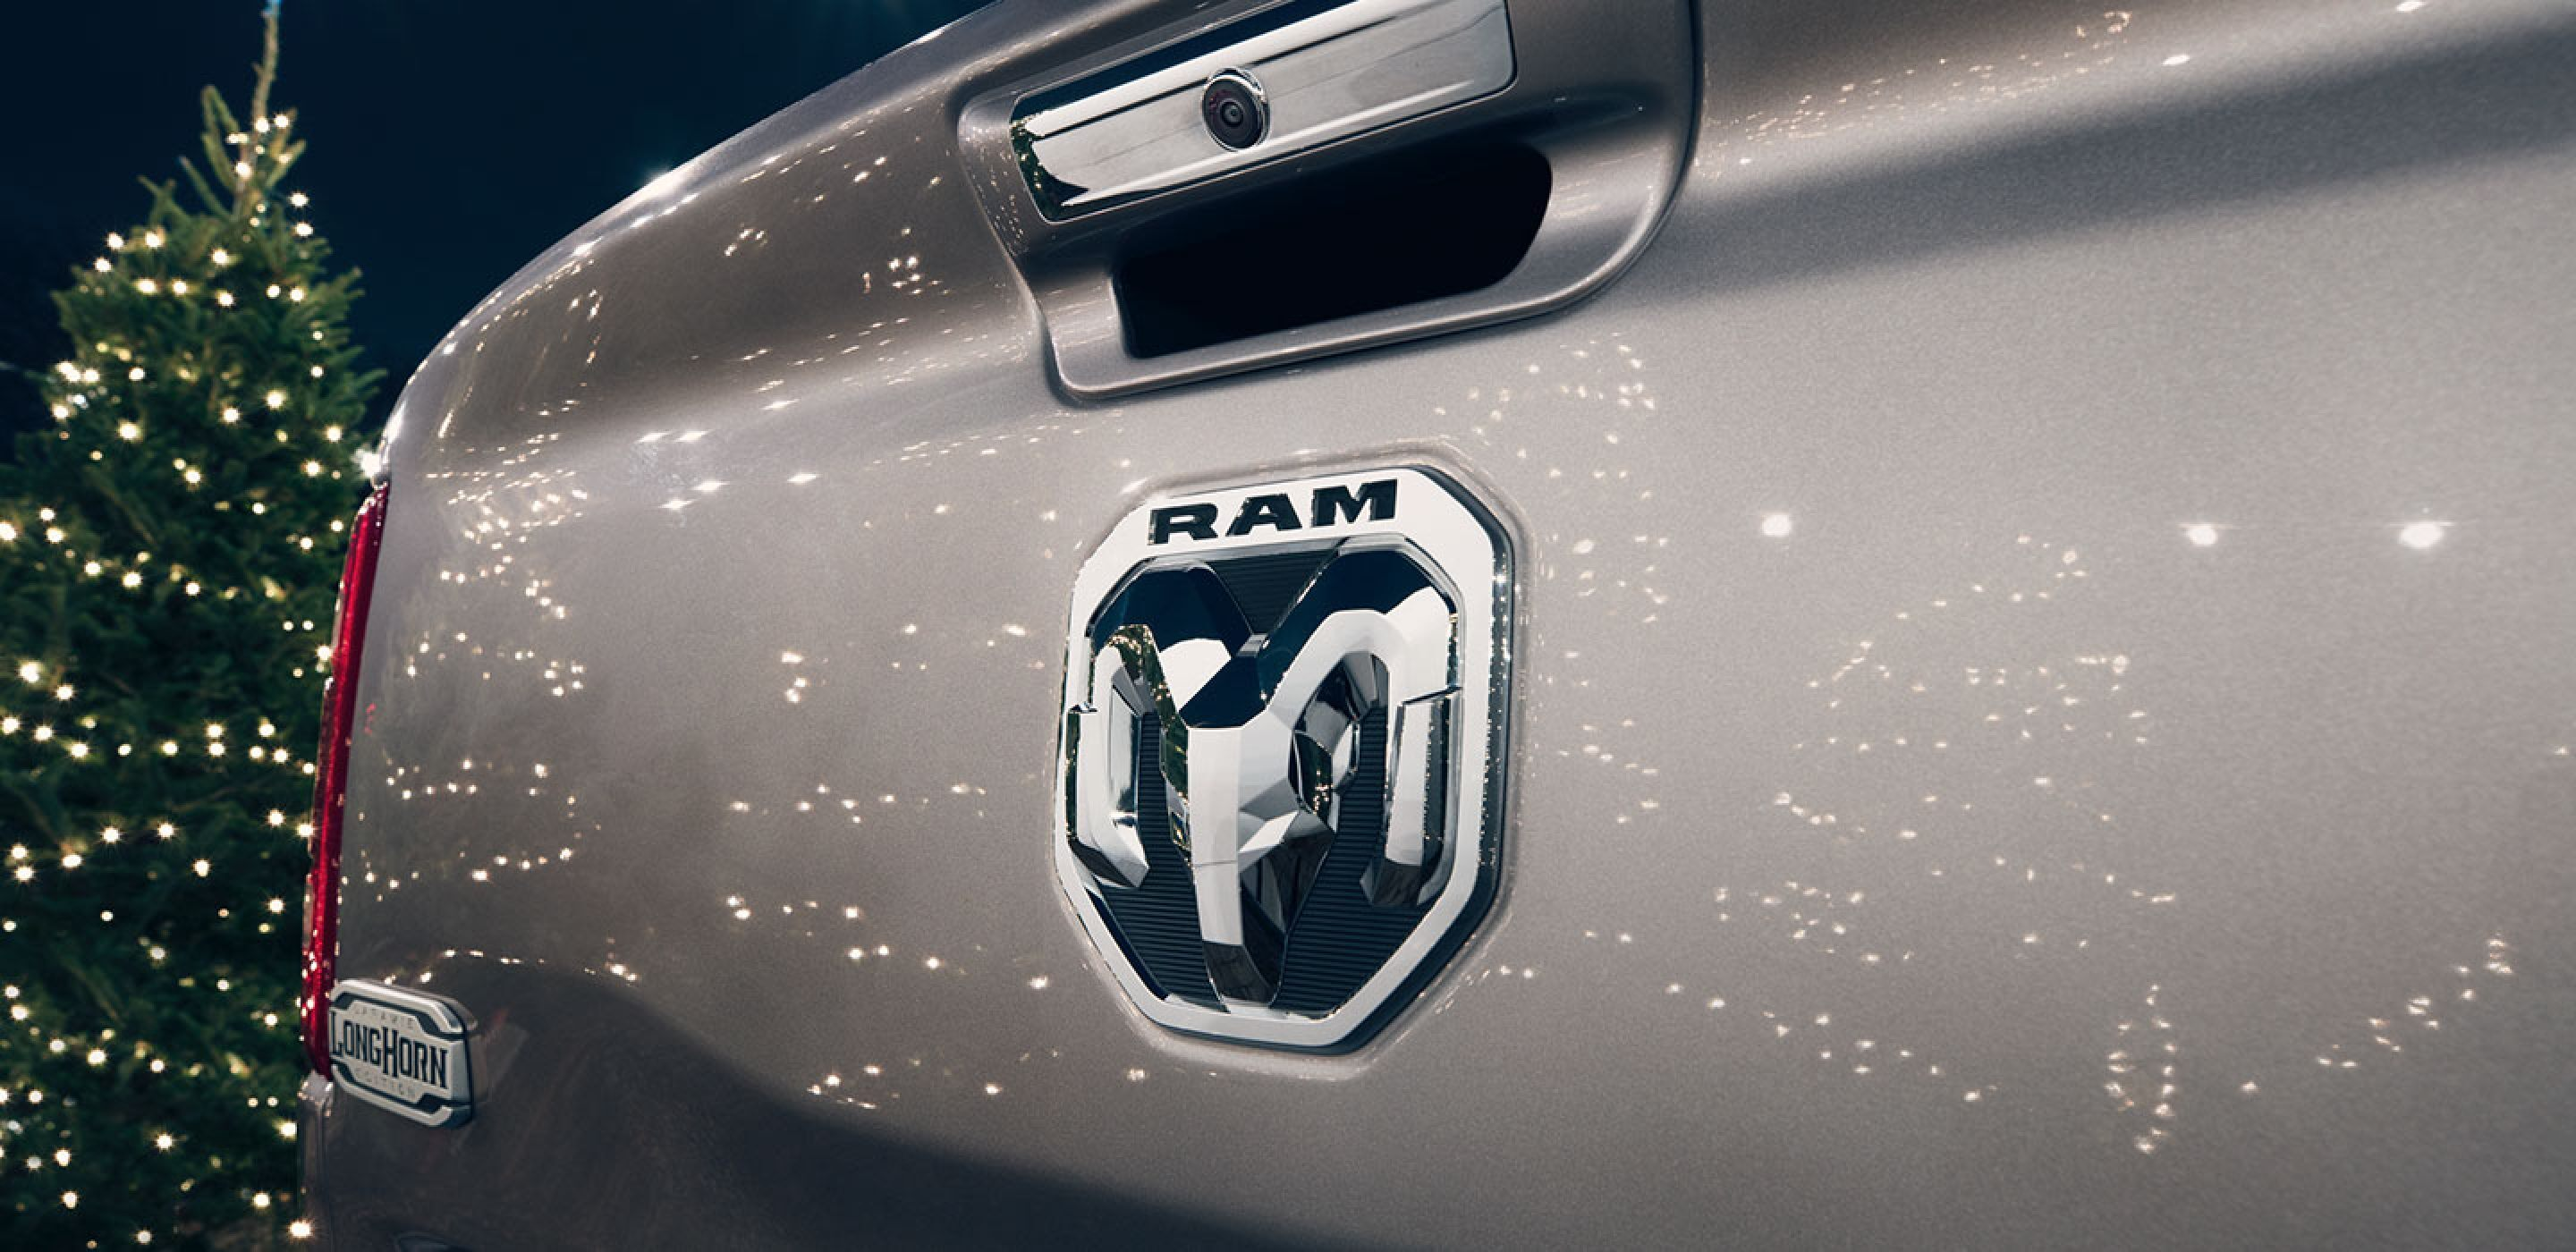 Exterior Details on the 2020 Ram 1500